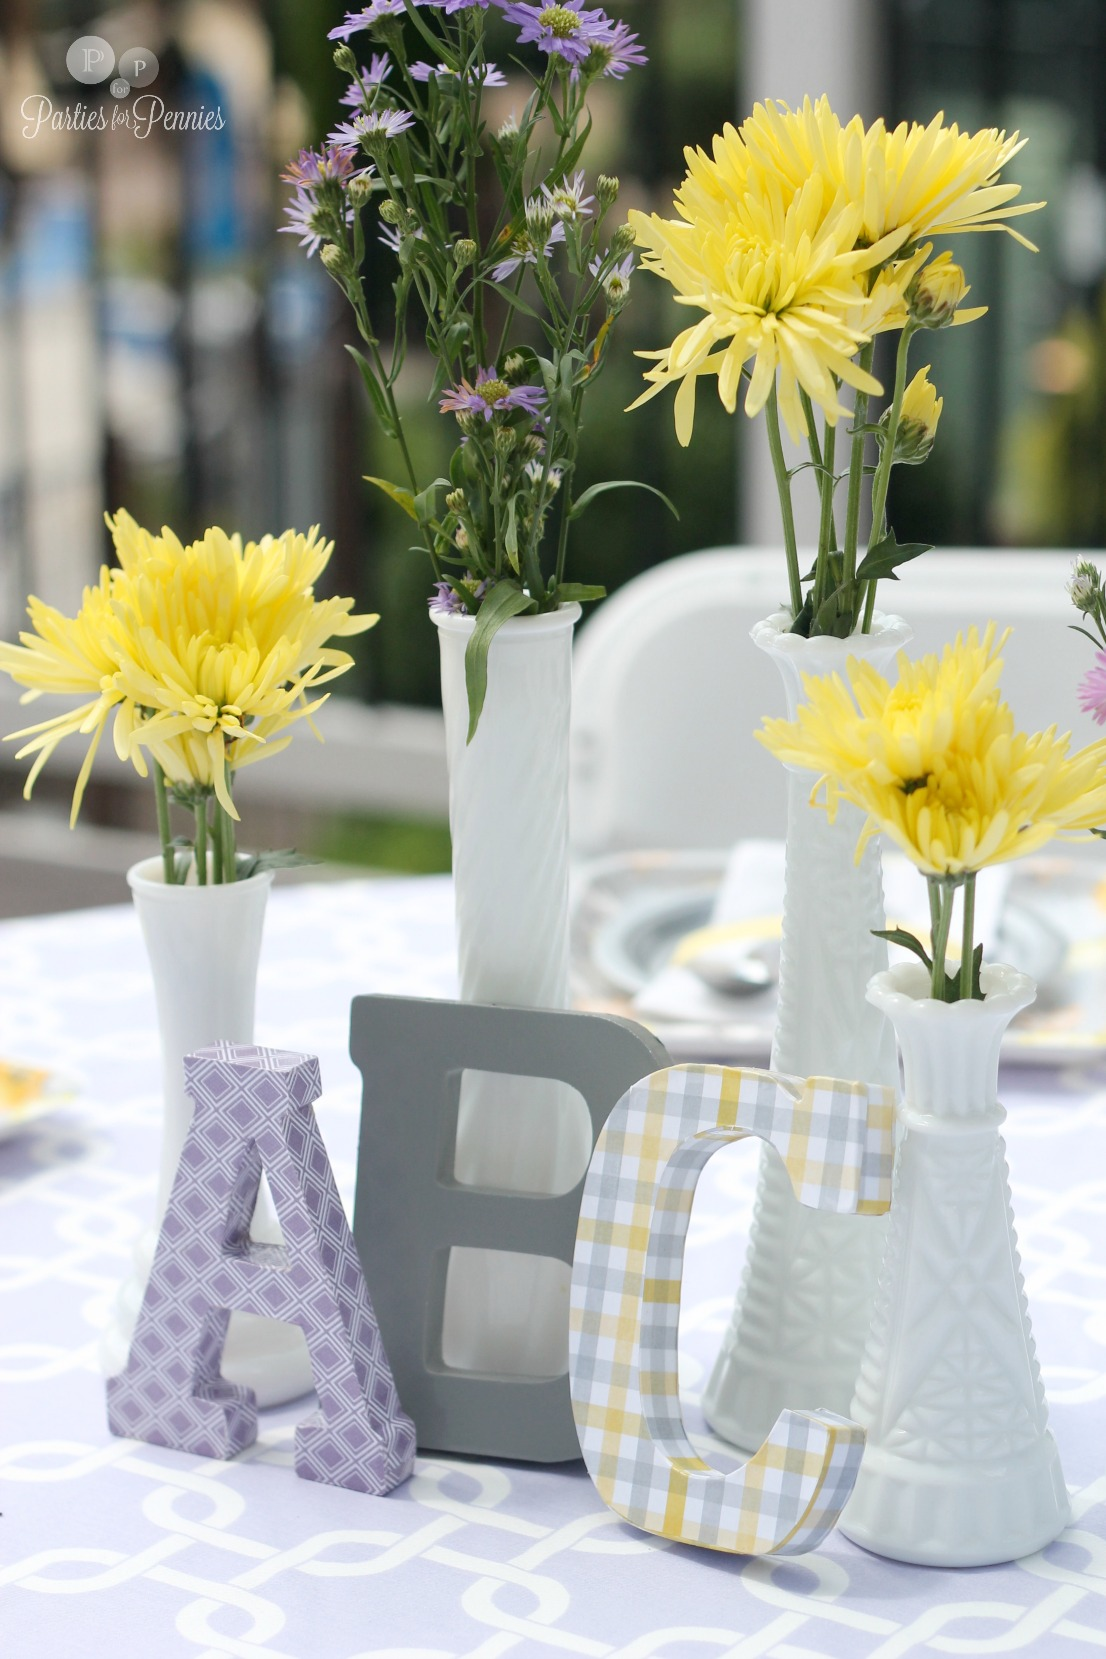 50 Ideas for Planning a Baby Shower | PartiesforPennies.com | Purple, Gray, and Yellow Baby Shower